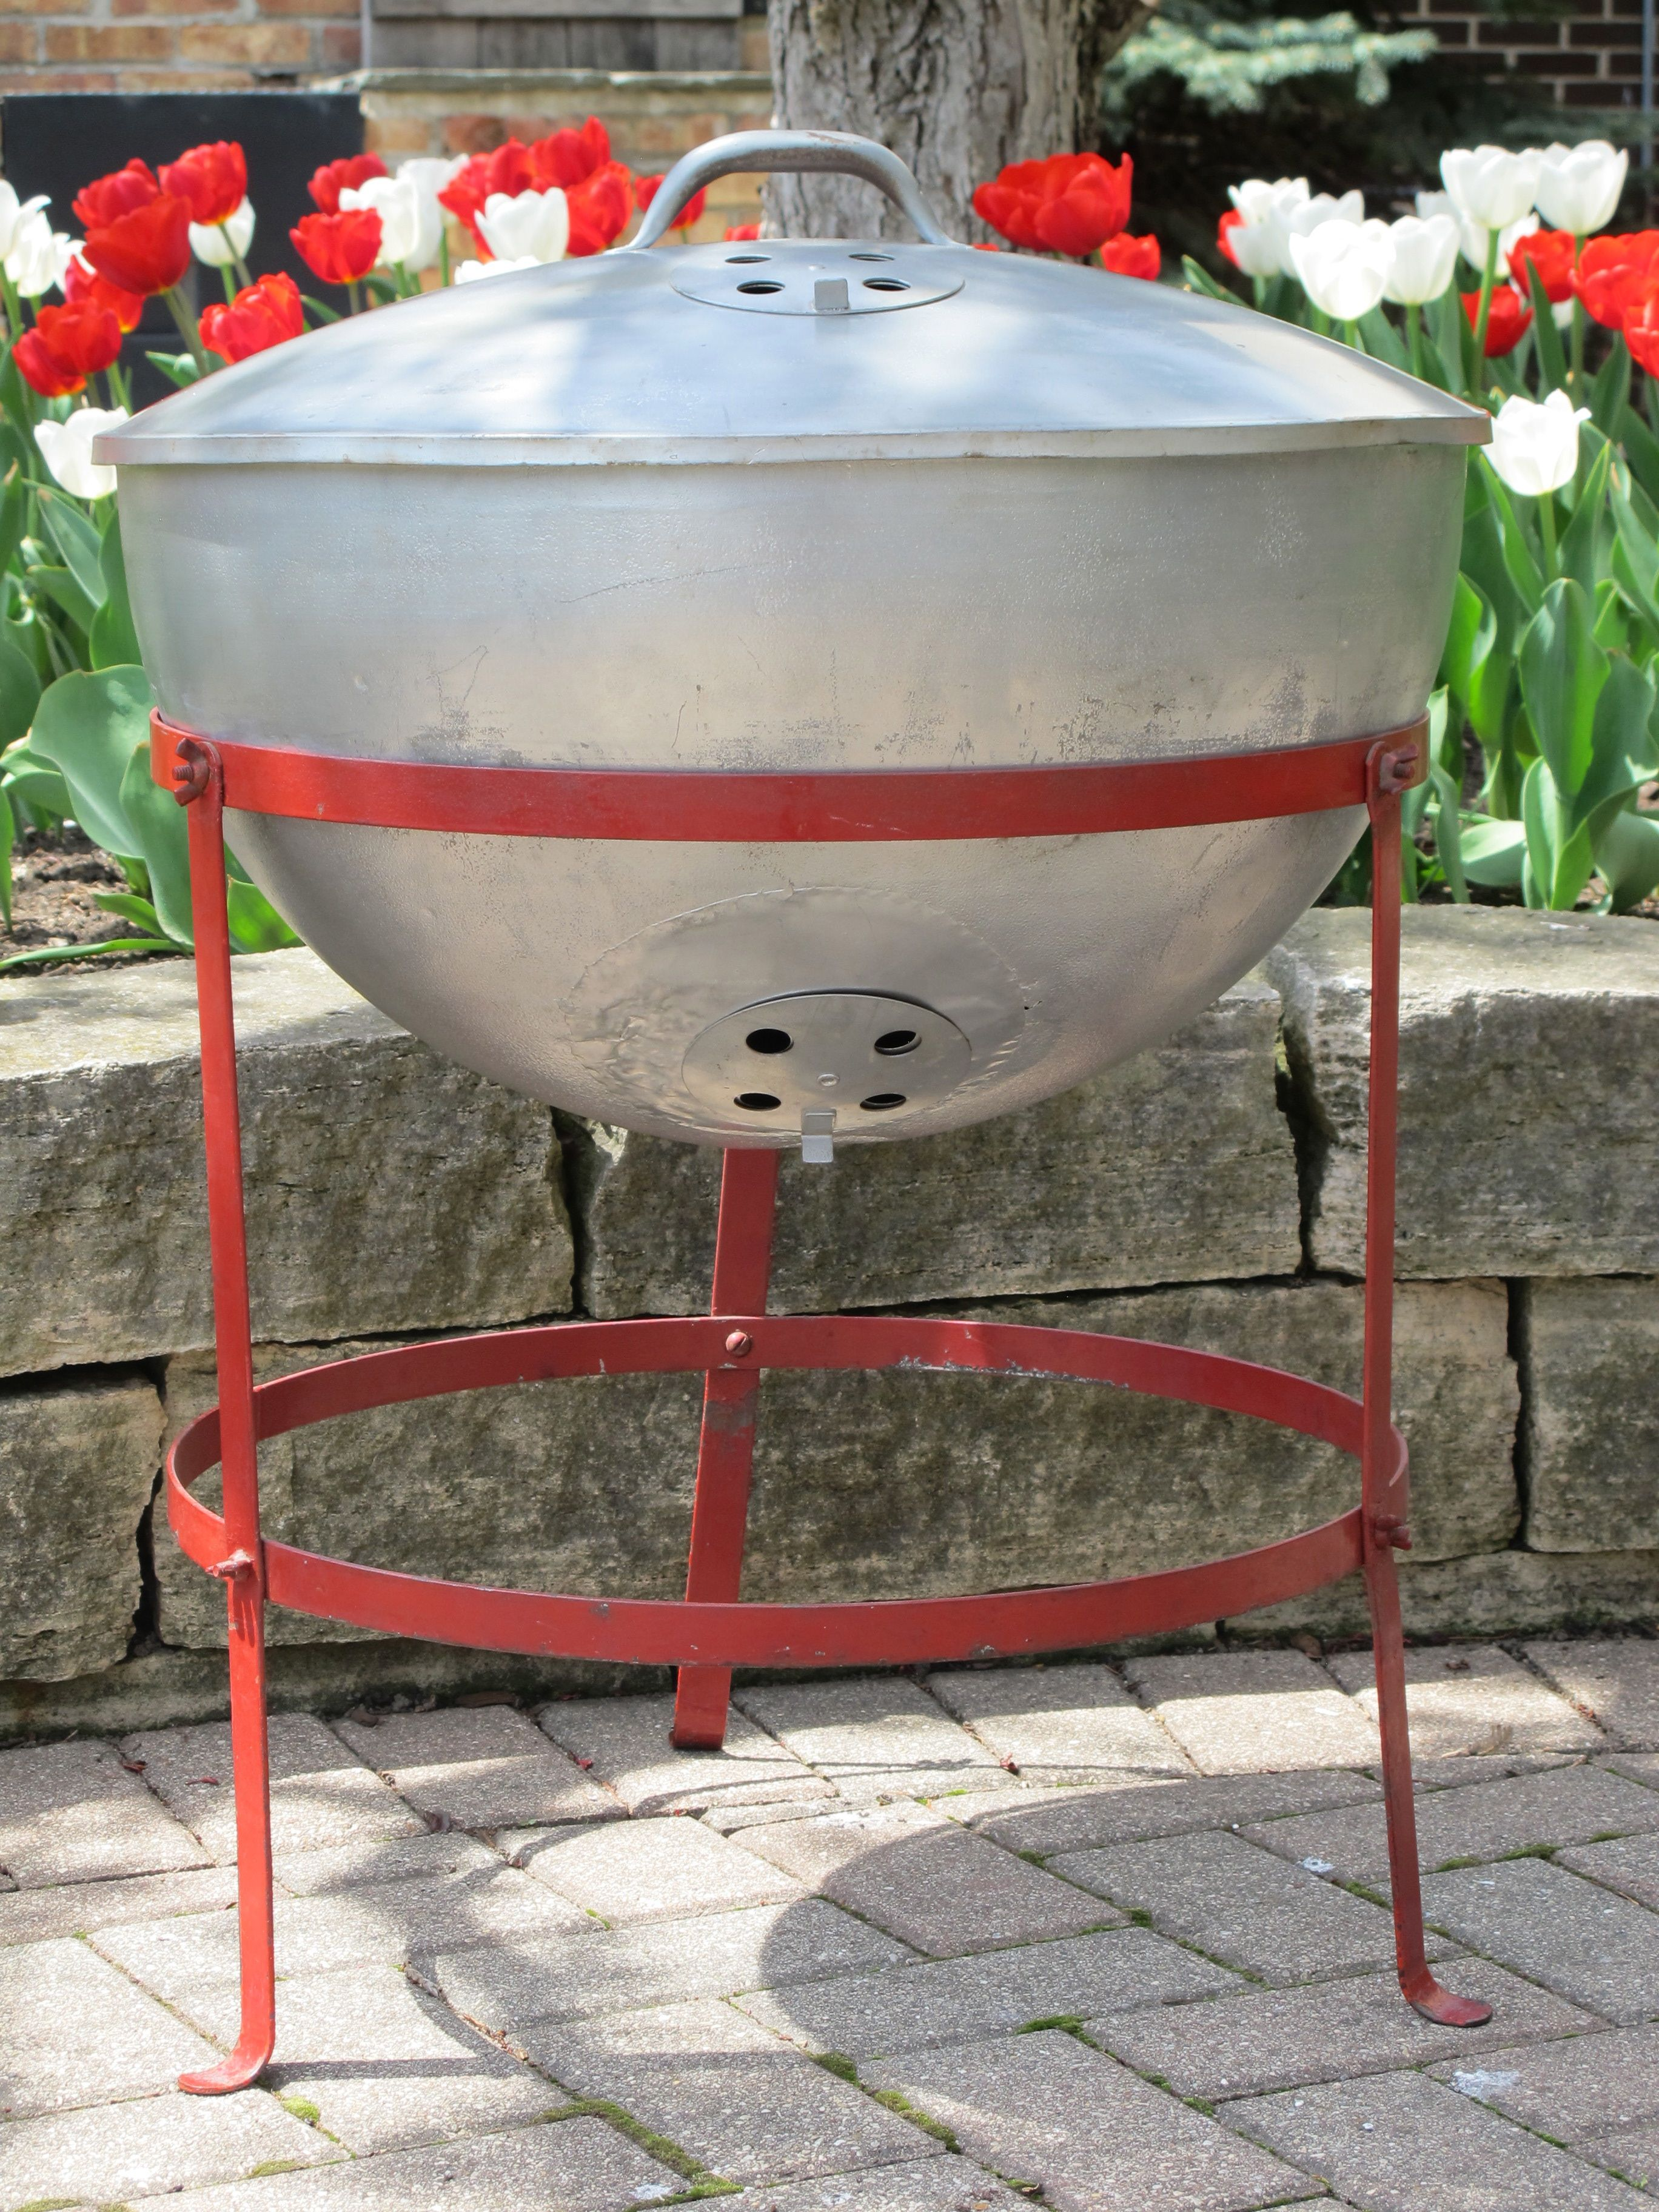 The Original Weber Grill From 1952 George Stephen S Home Run Weber Kettle Kettle Weber Grill